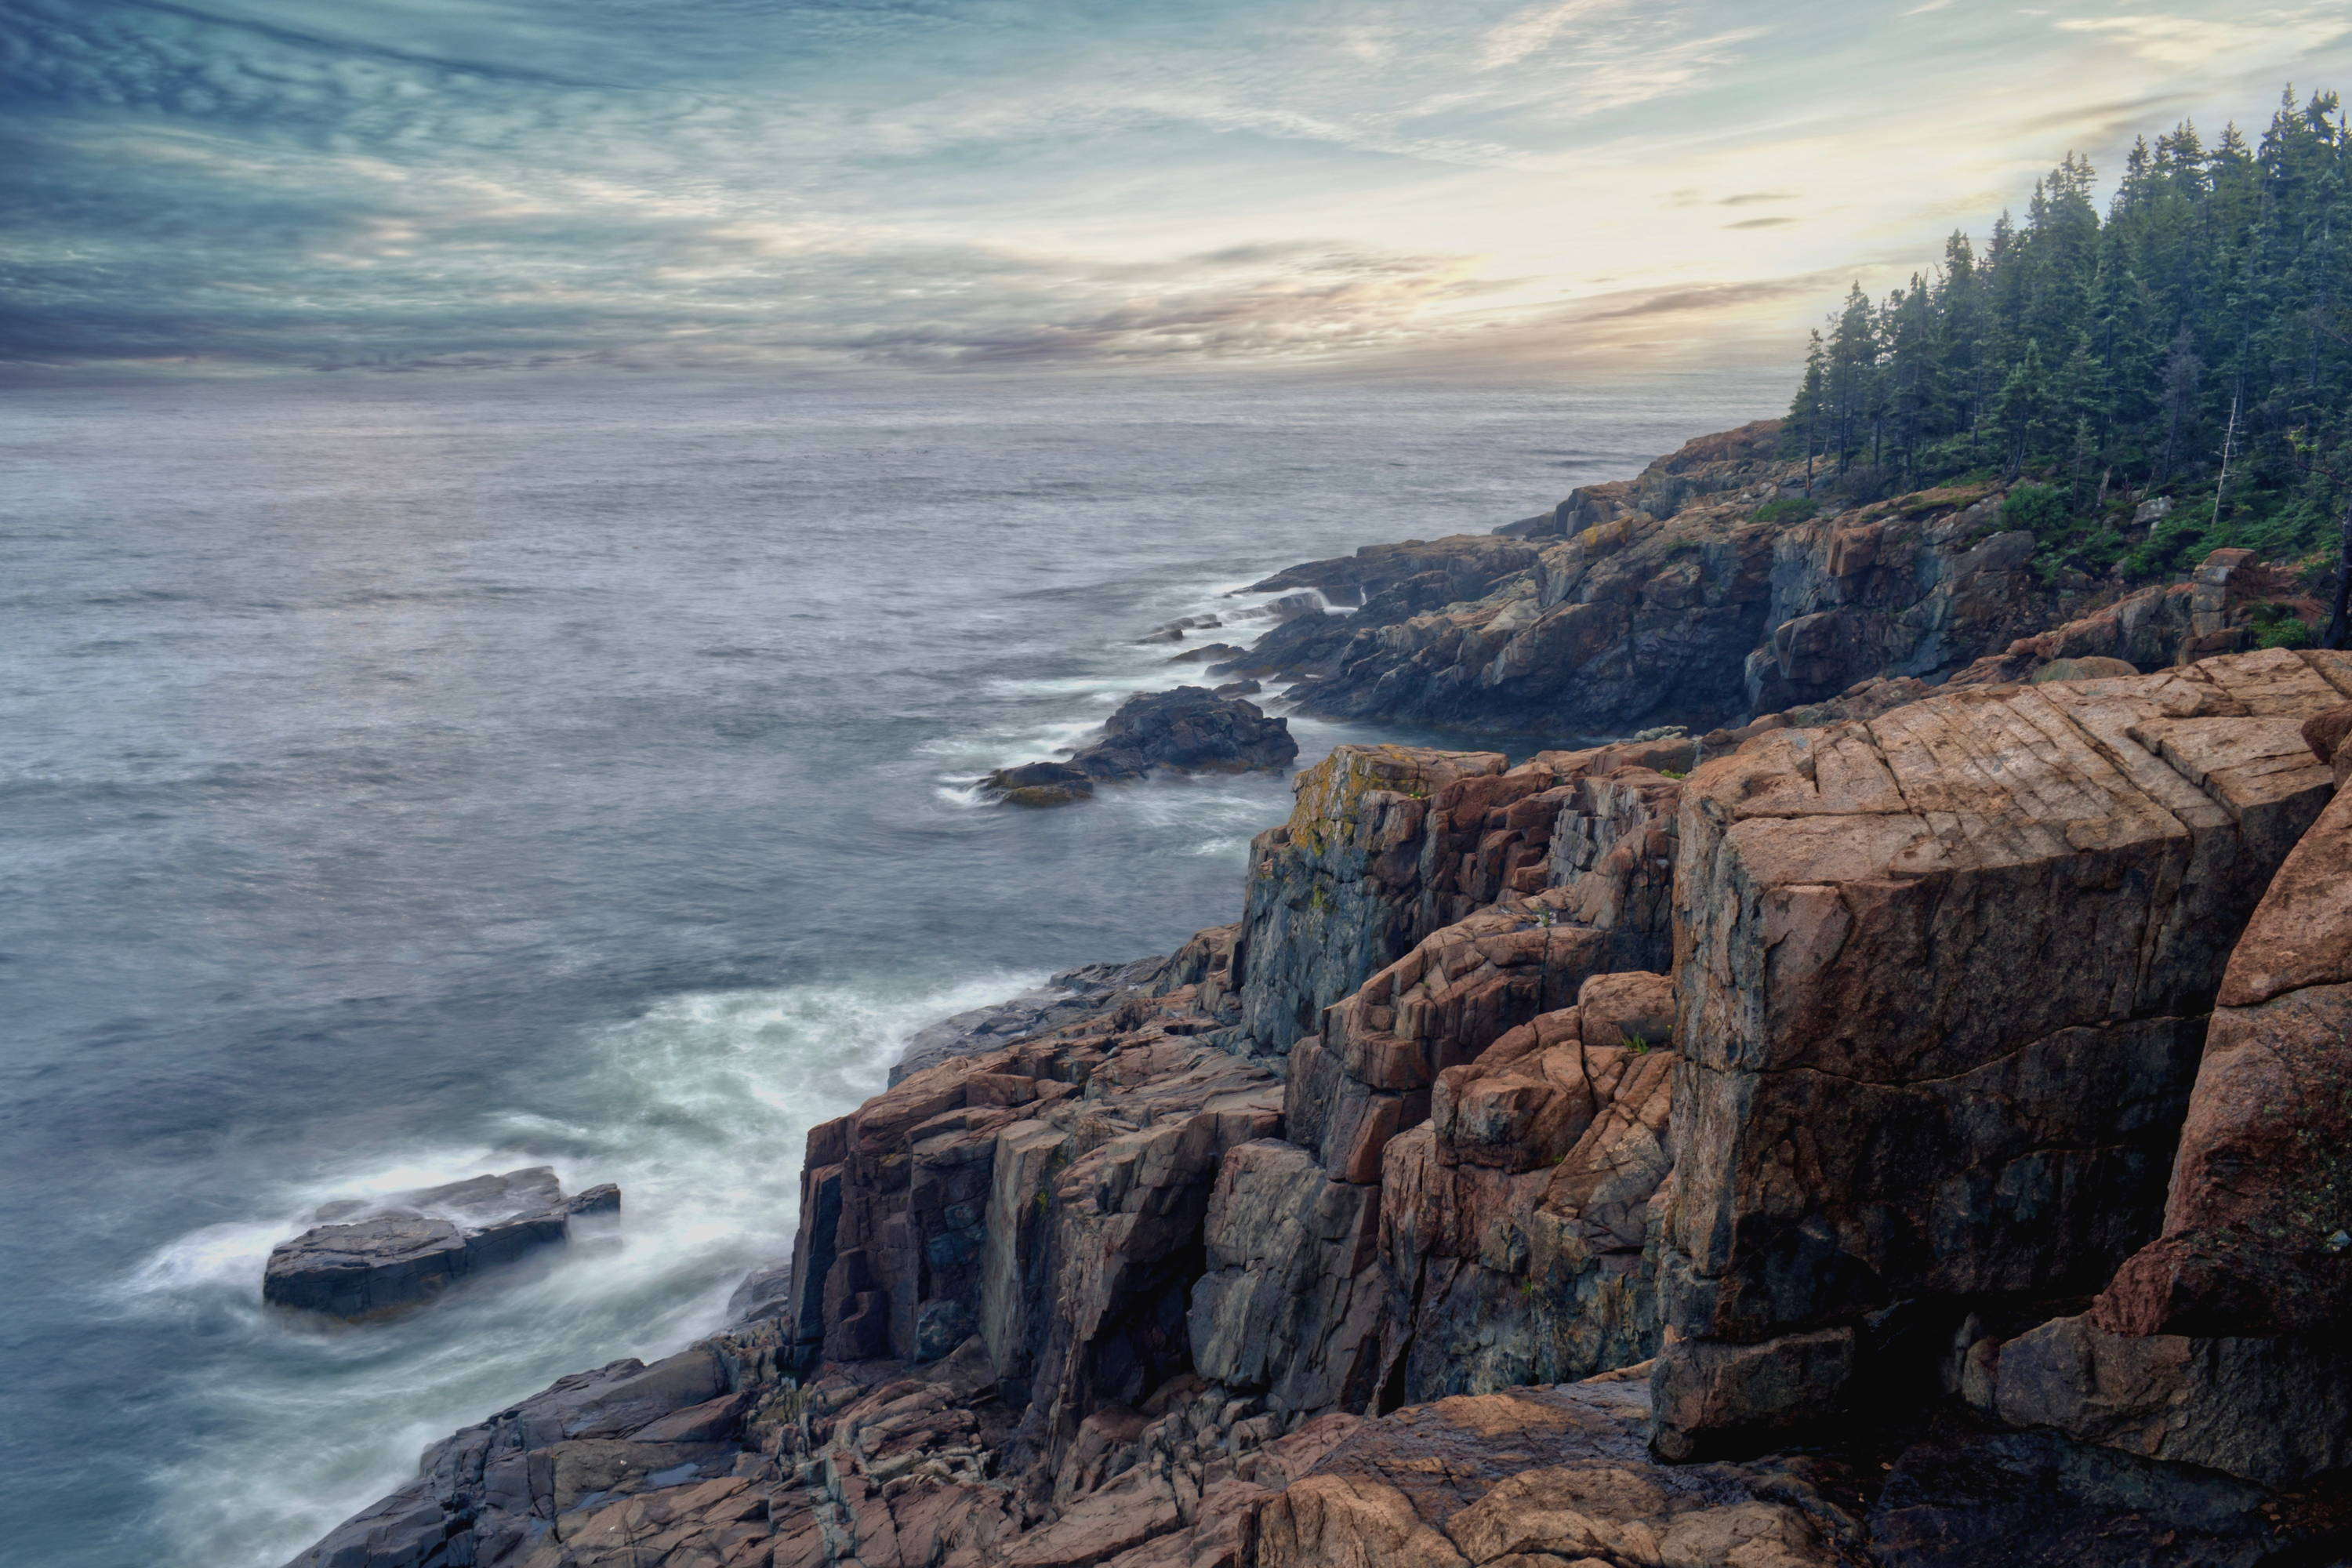 Things to Do in Maine: Acadia National Park Camping & Other Activities. Jagged rocks leading into the ocean with pine trees in background.